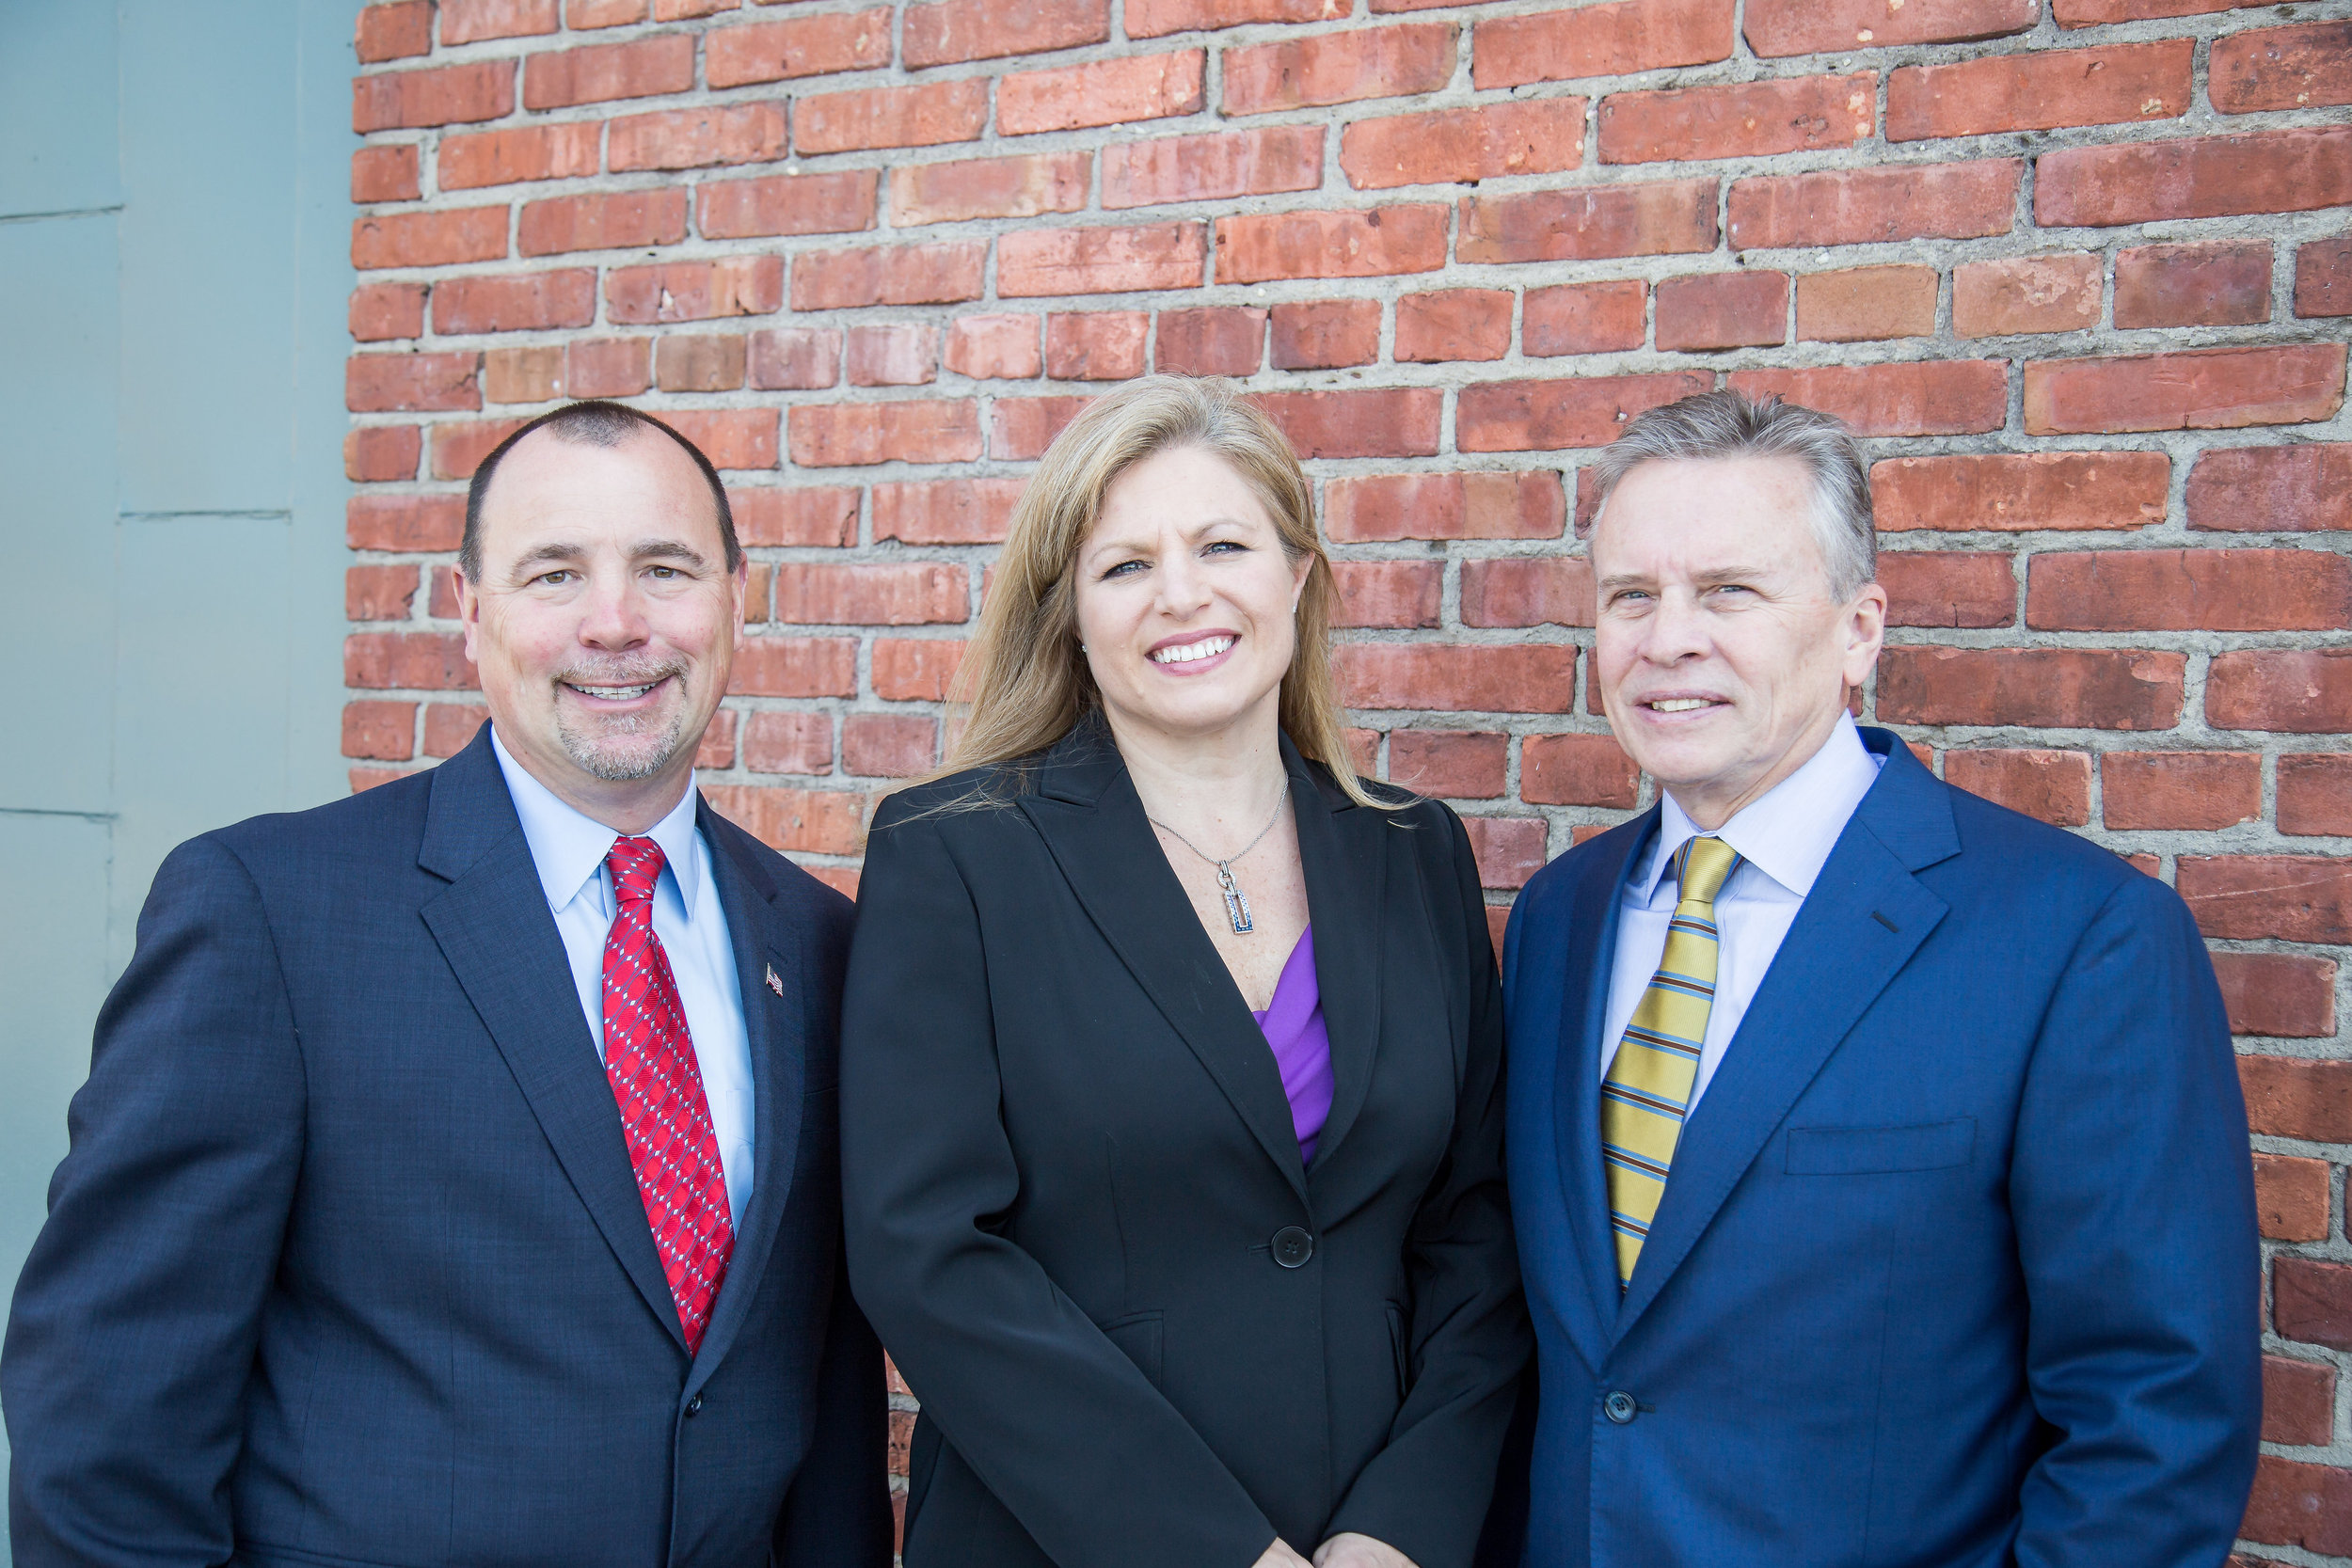 Greg Balasus, Jodi Reedy, and Robert Heacox, I3's Leadership Team.